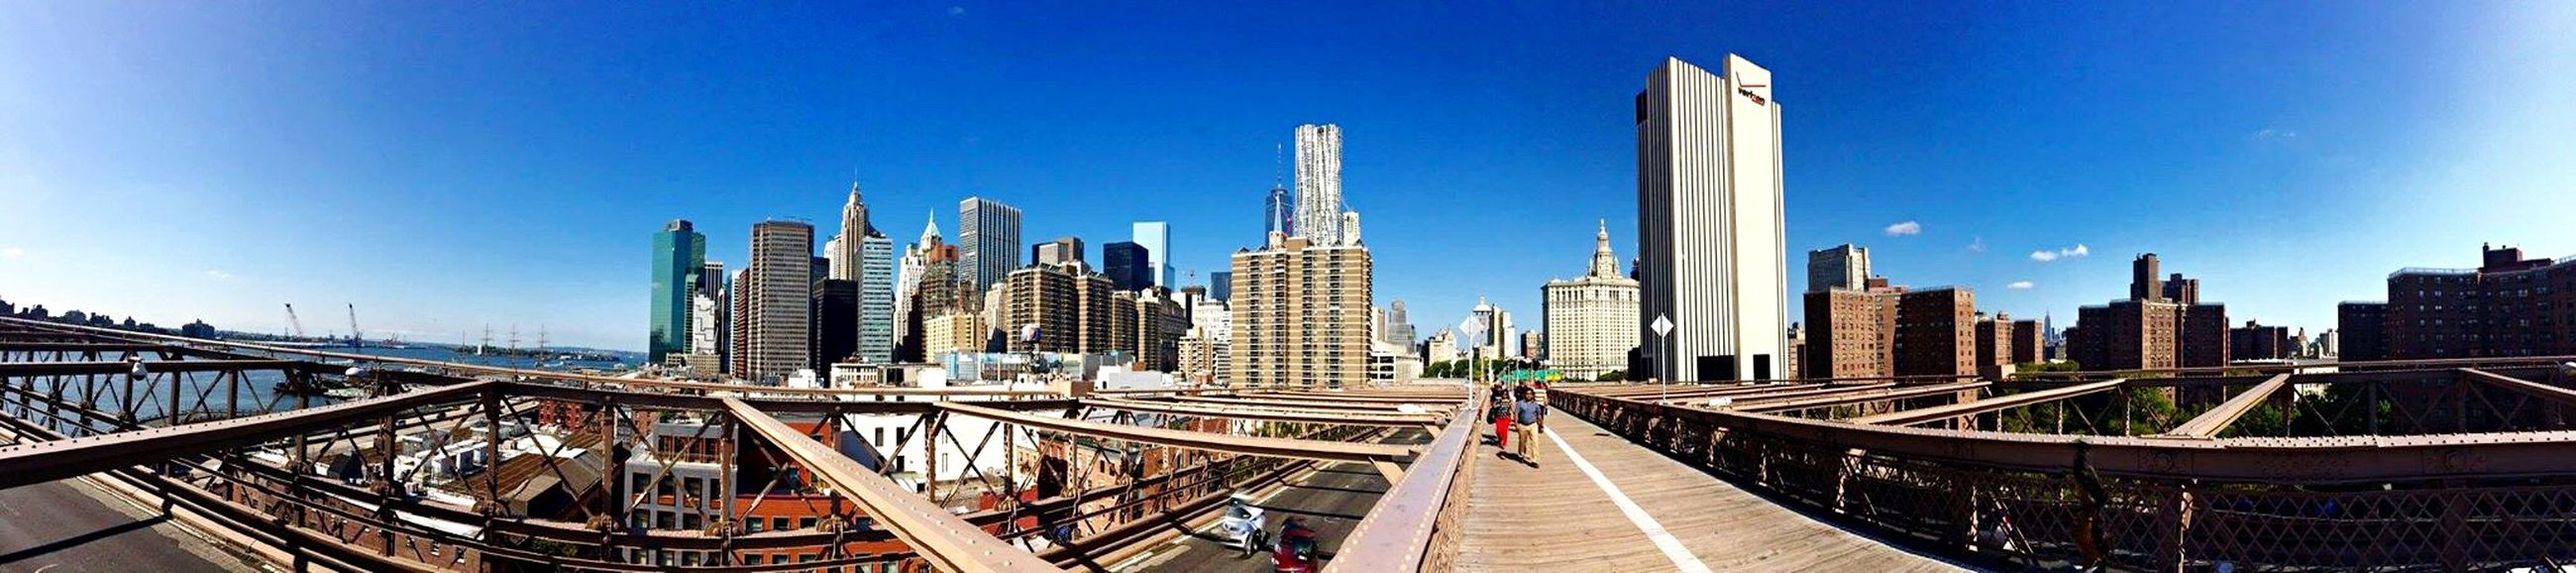 Amazing Panoramic Photography Hello World Hello New York! Brookline Bridge Taking Photos Traveling Bestoftheday